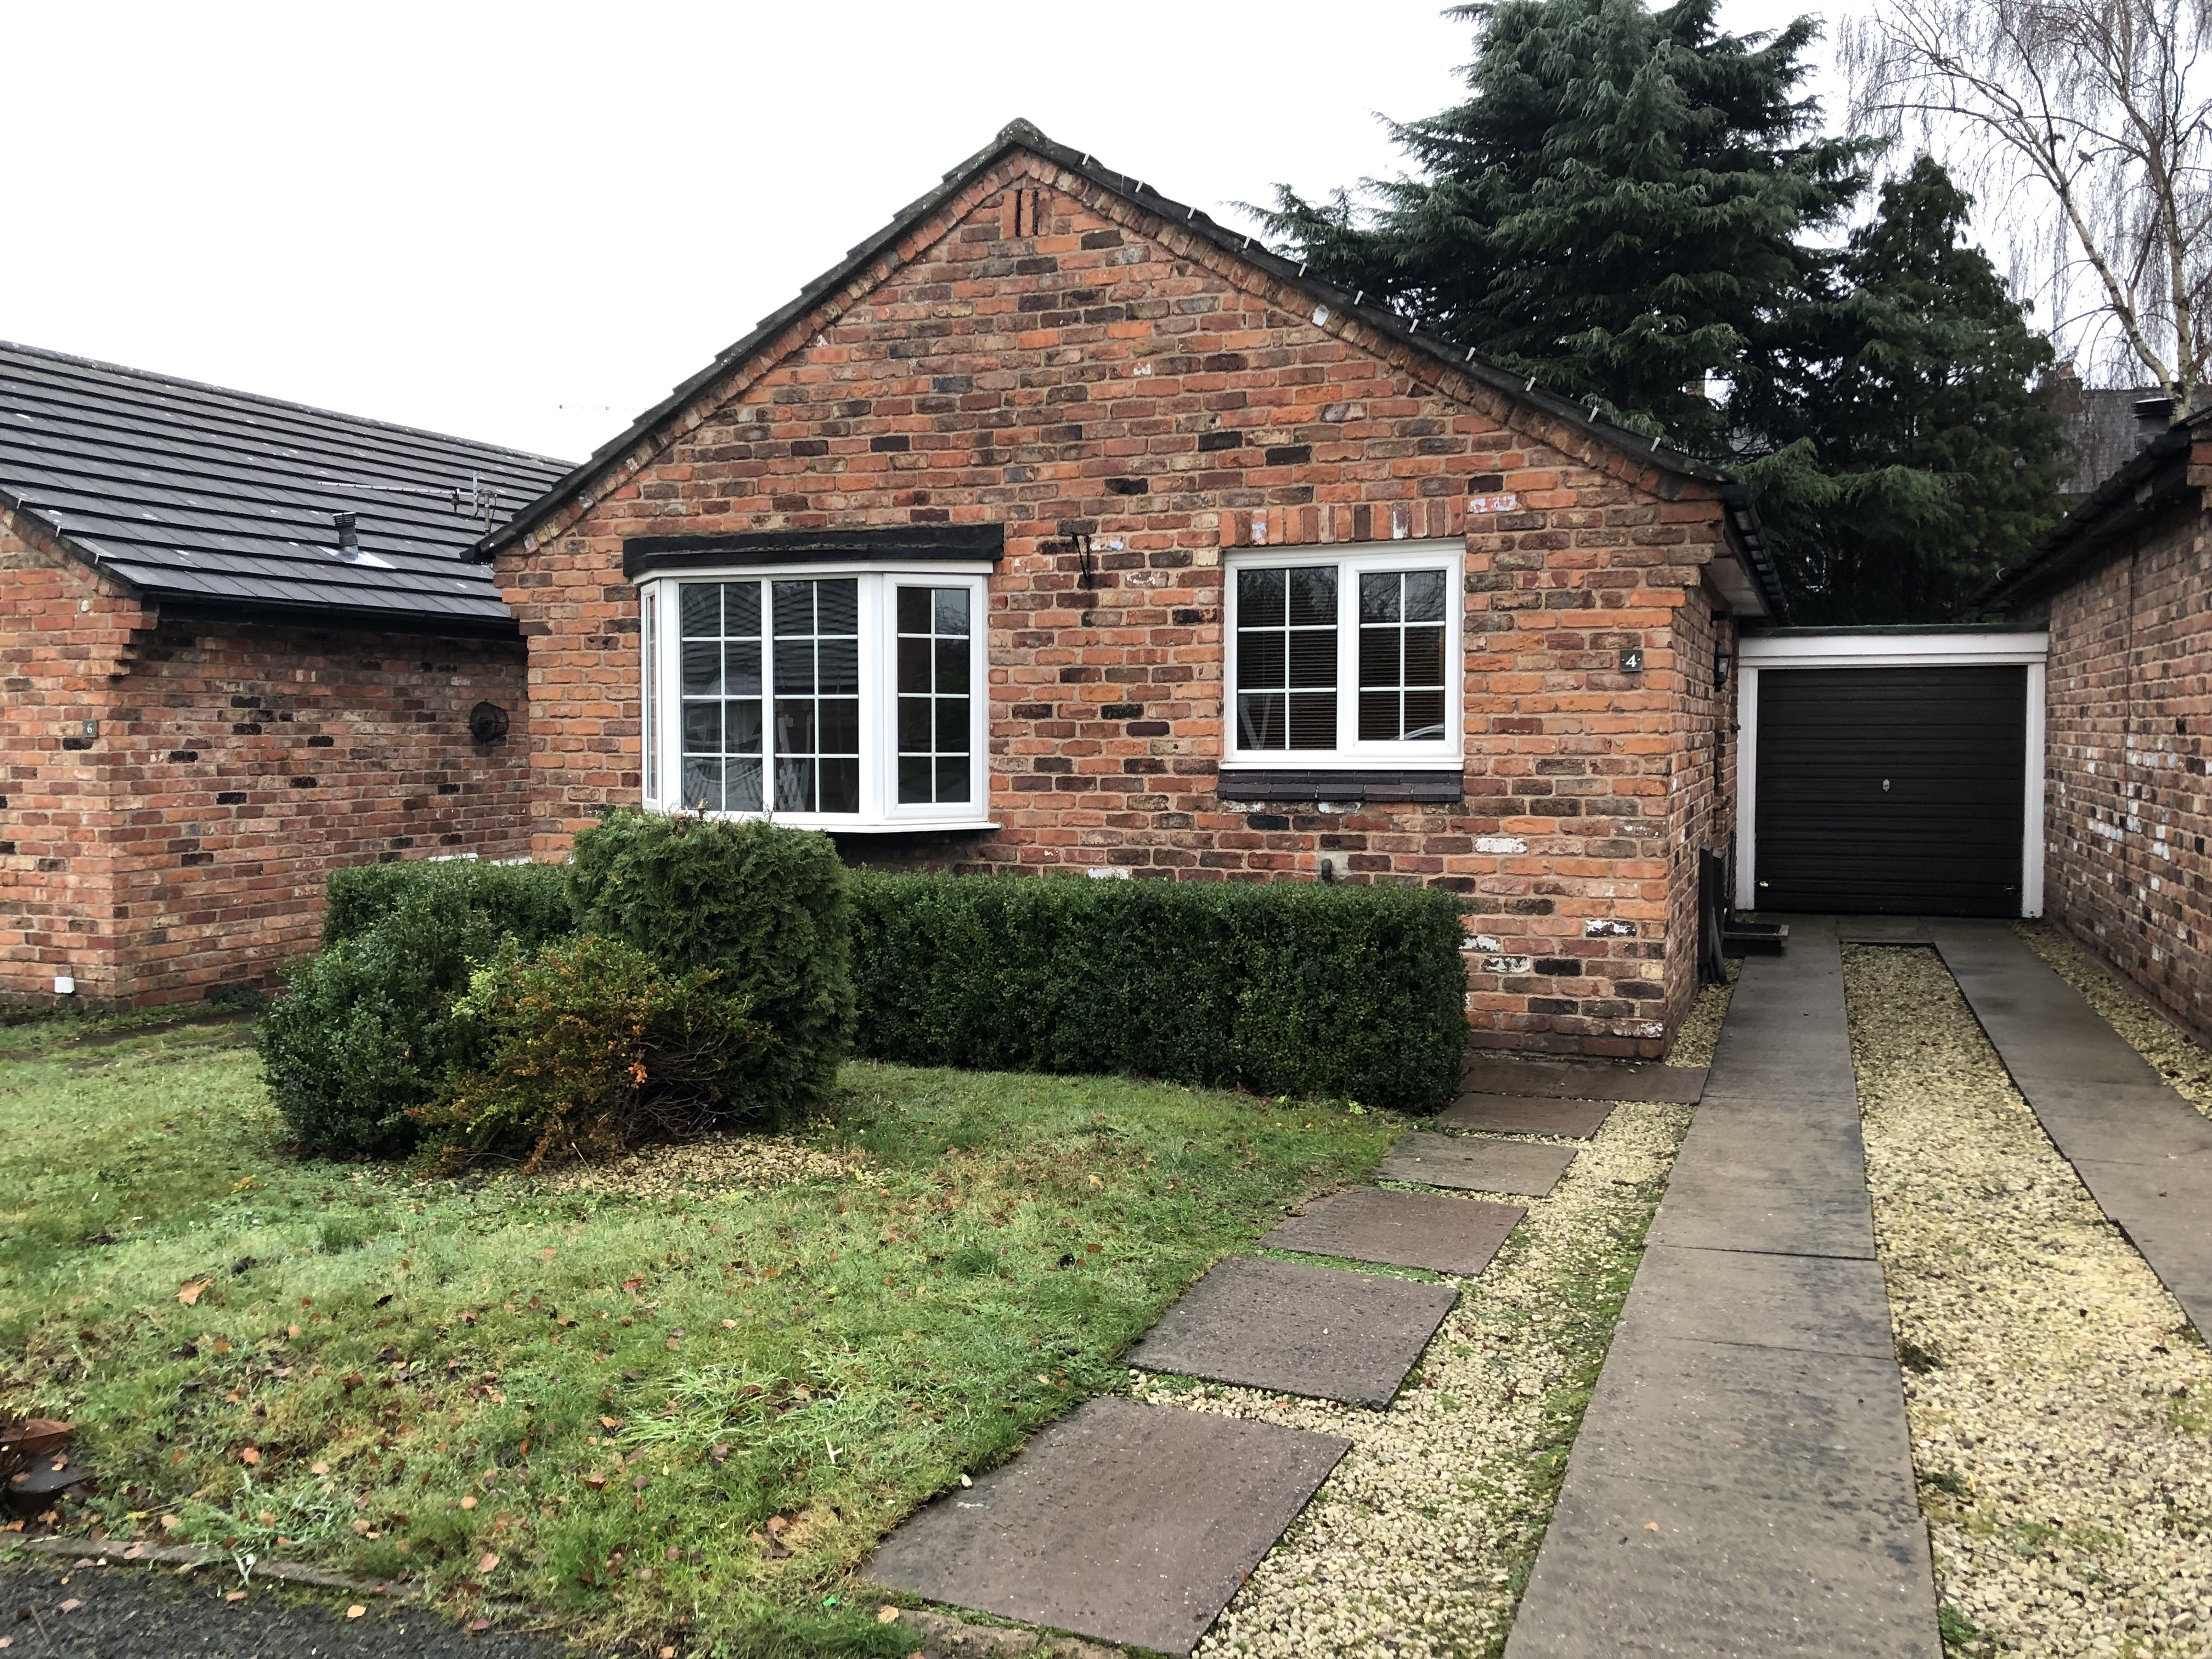 Charming Two-Bedroom Bungalow- Russell Road, Winsford